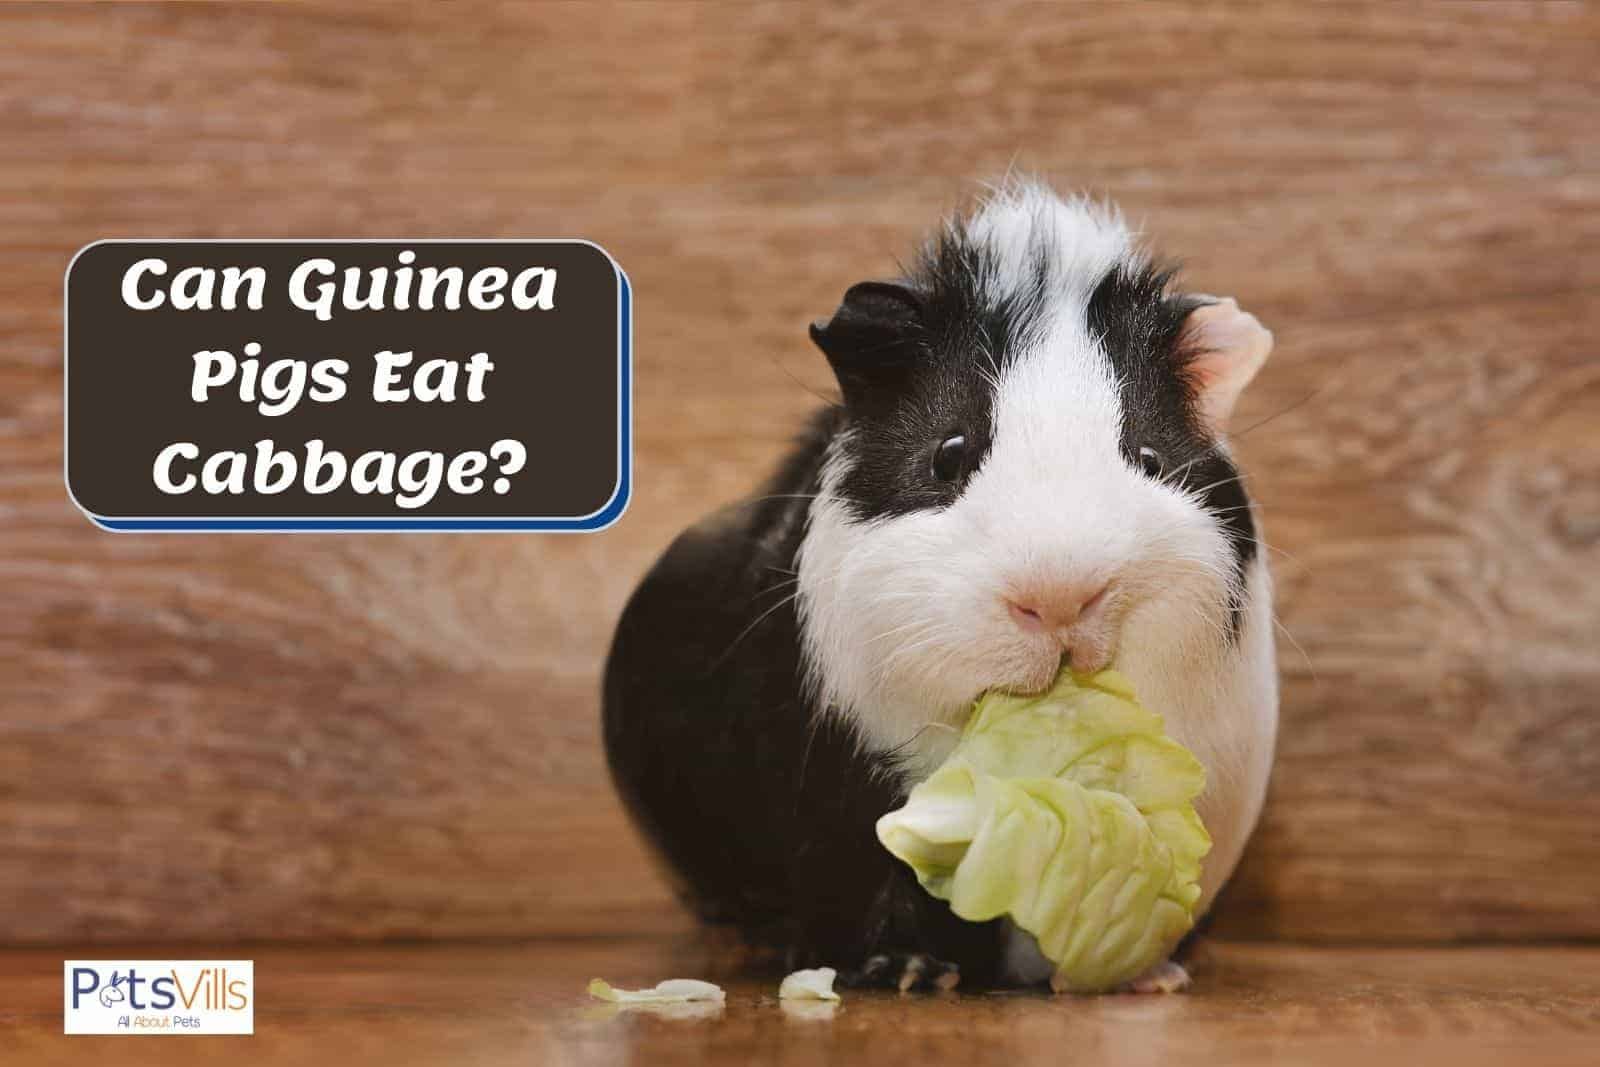 a black and white cavy eating a cabbage but can guinea pigs eat cabbage everyday?